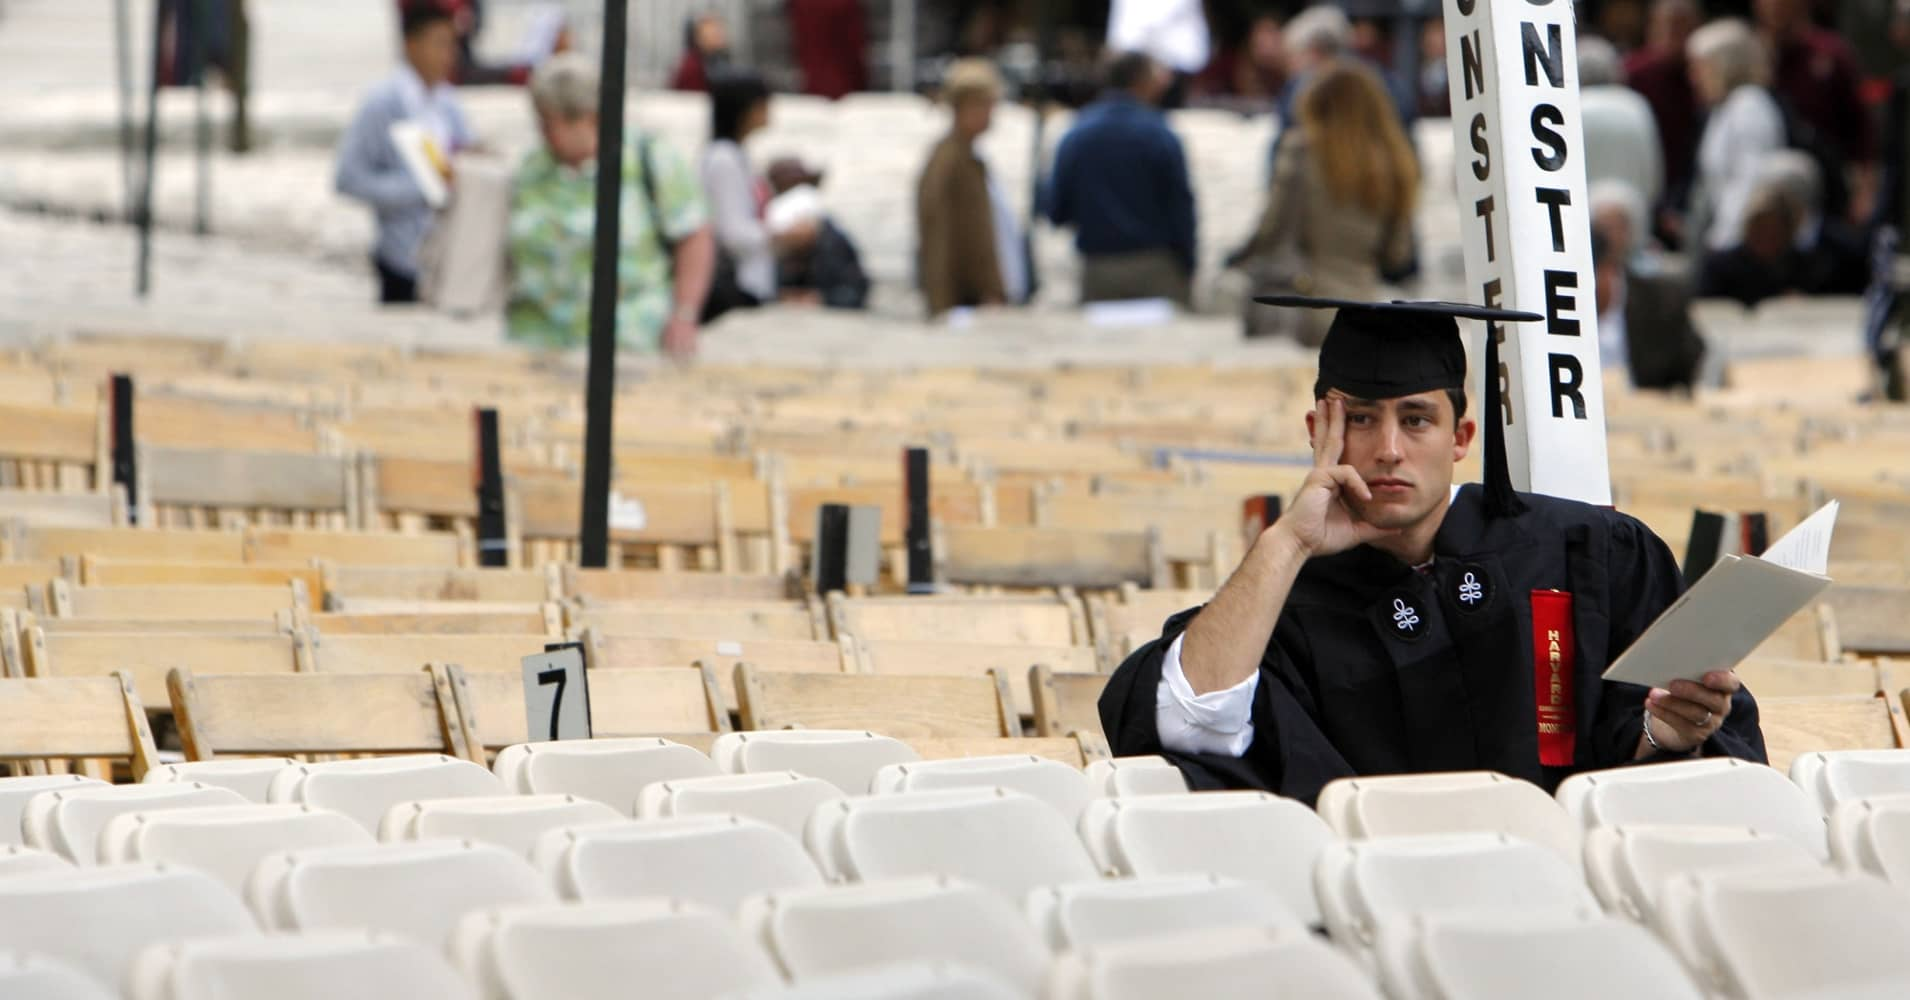 A graduating student waits for the start of Harvard University's Commencement Exercises.